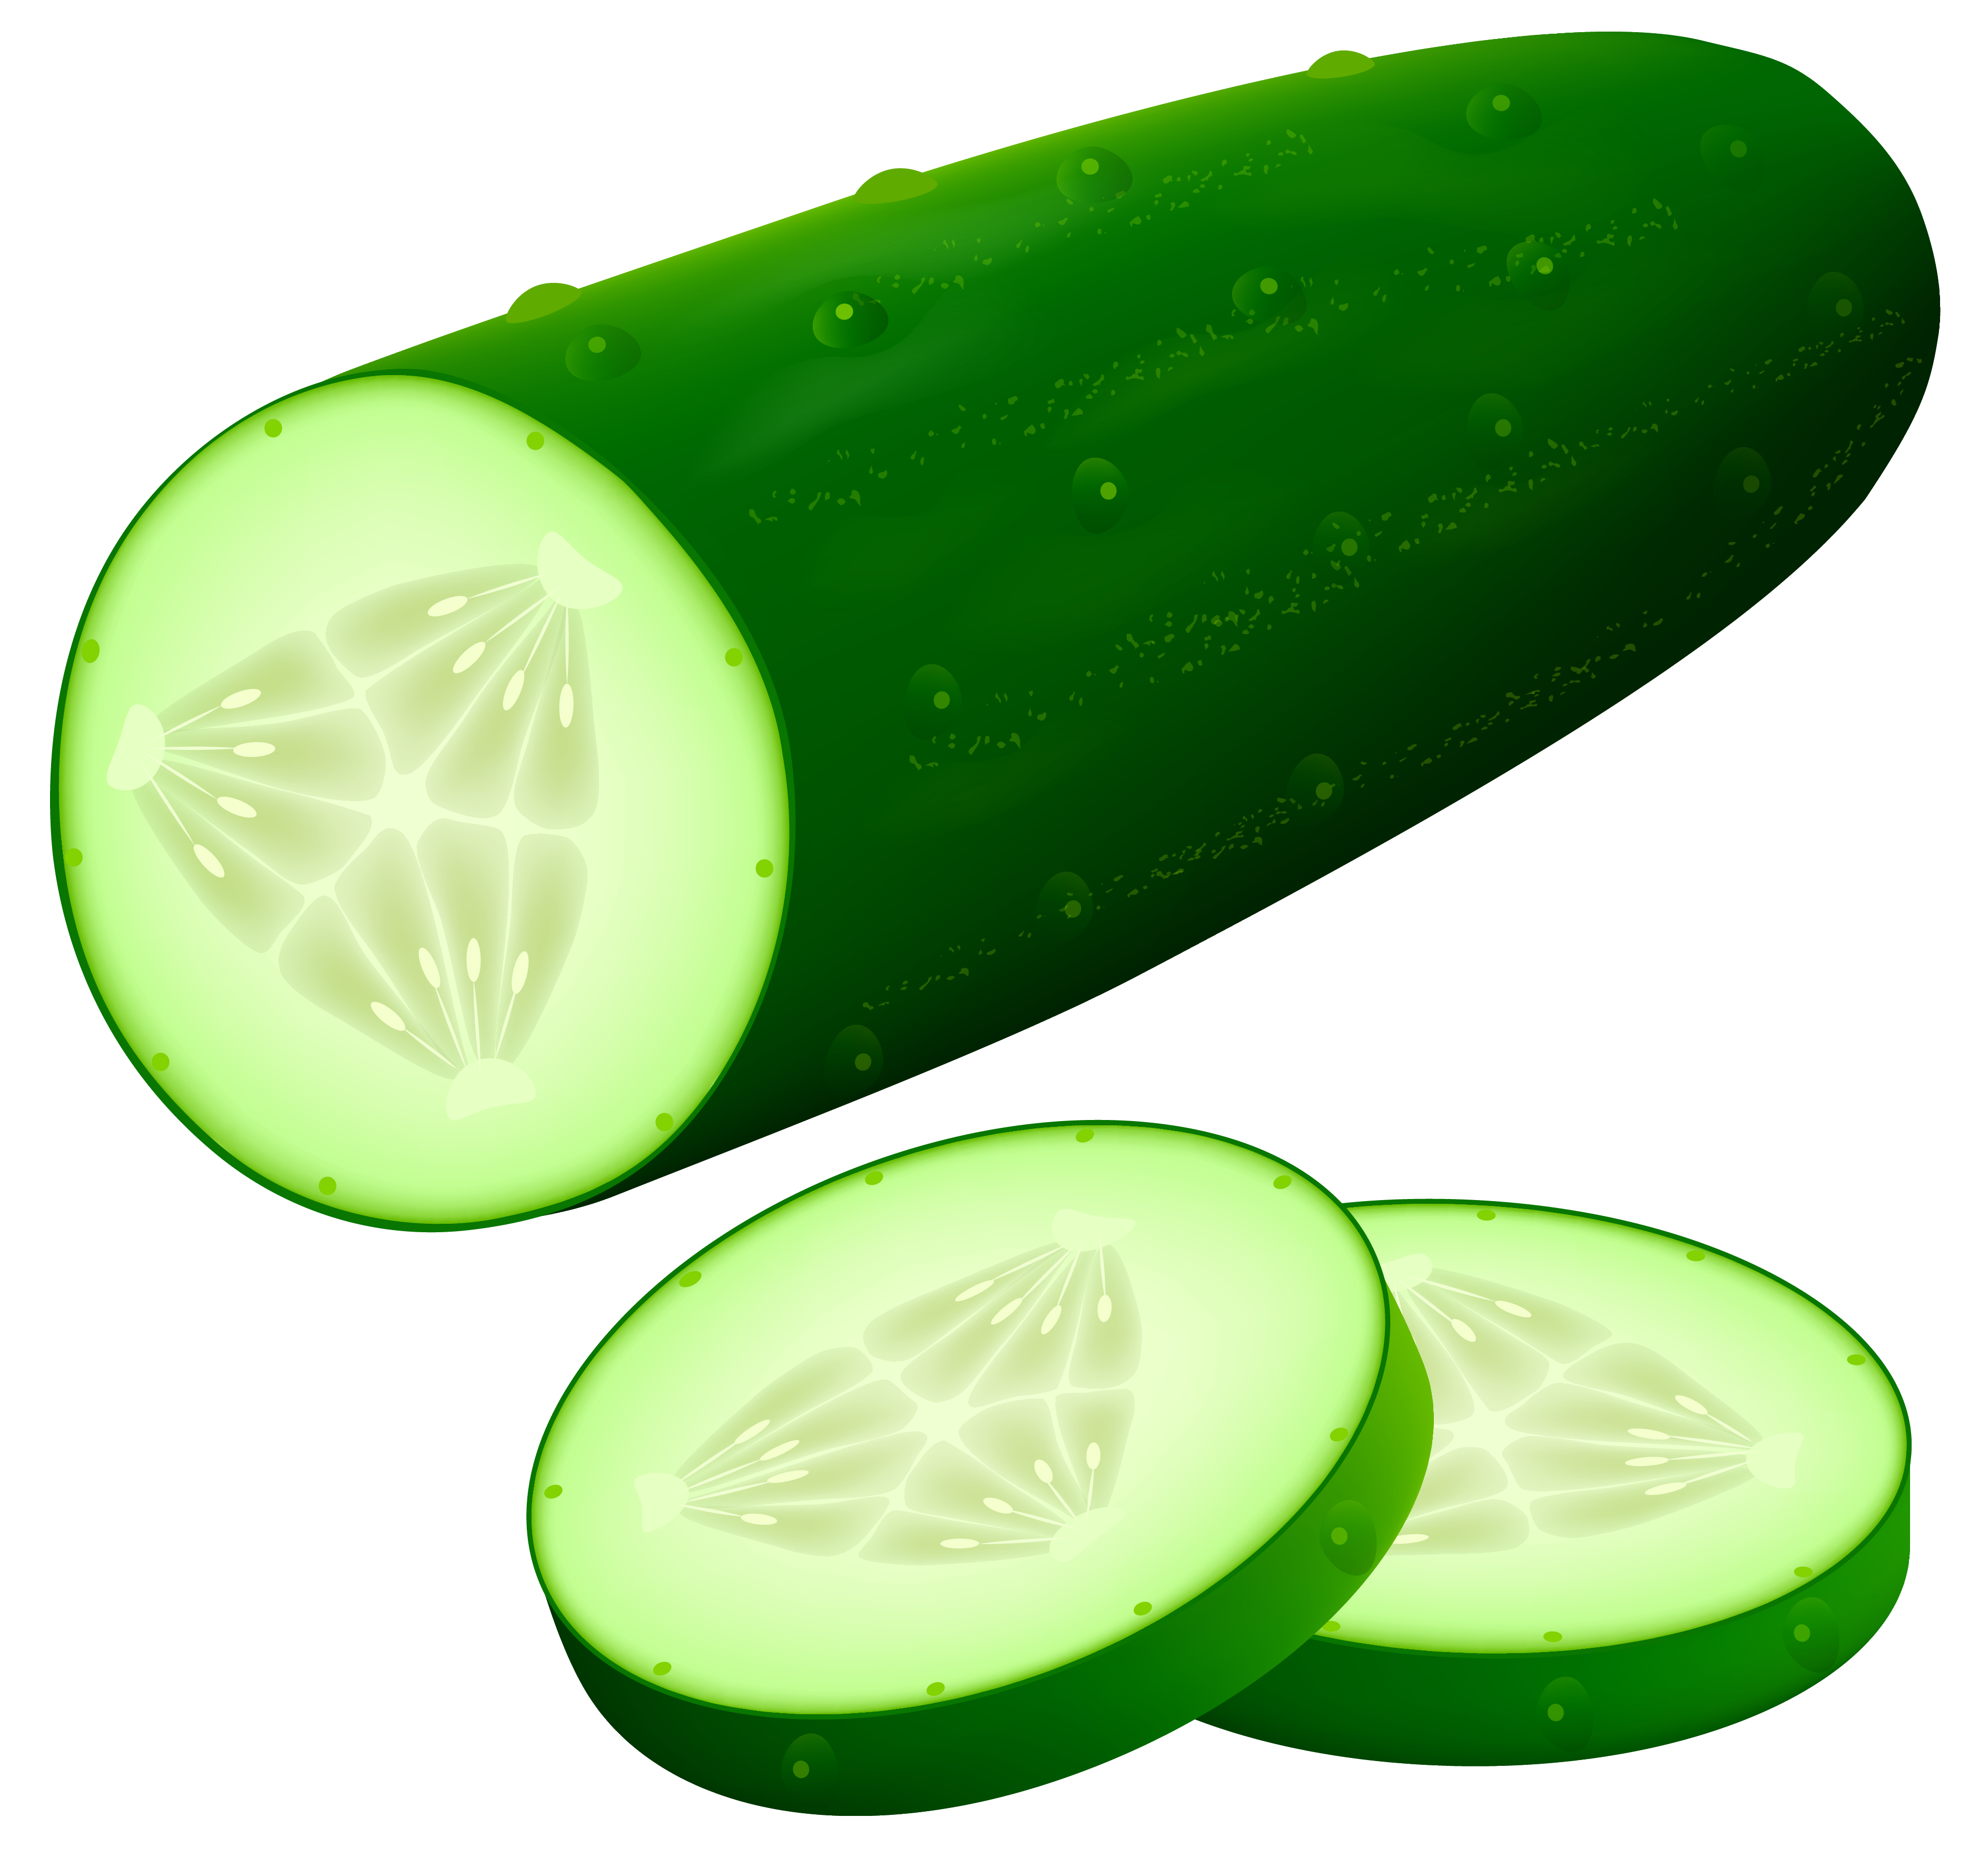 cucumber png clipart image best web clipart #26823